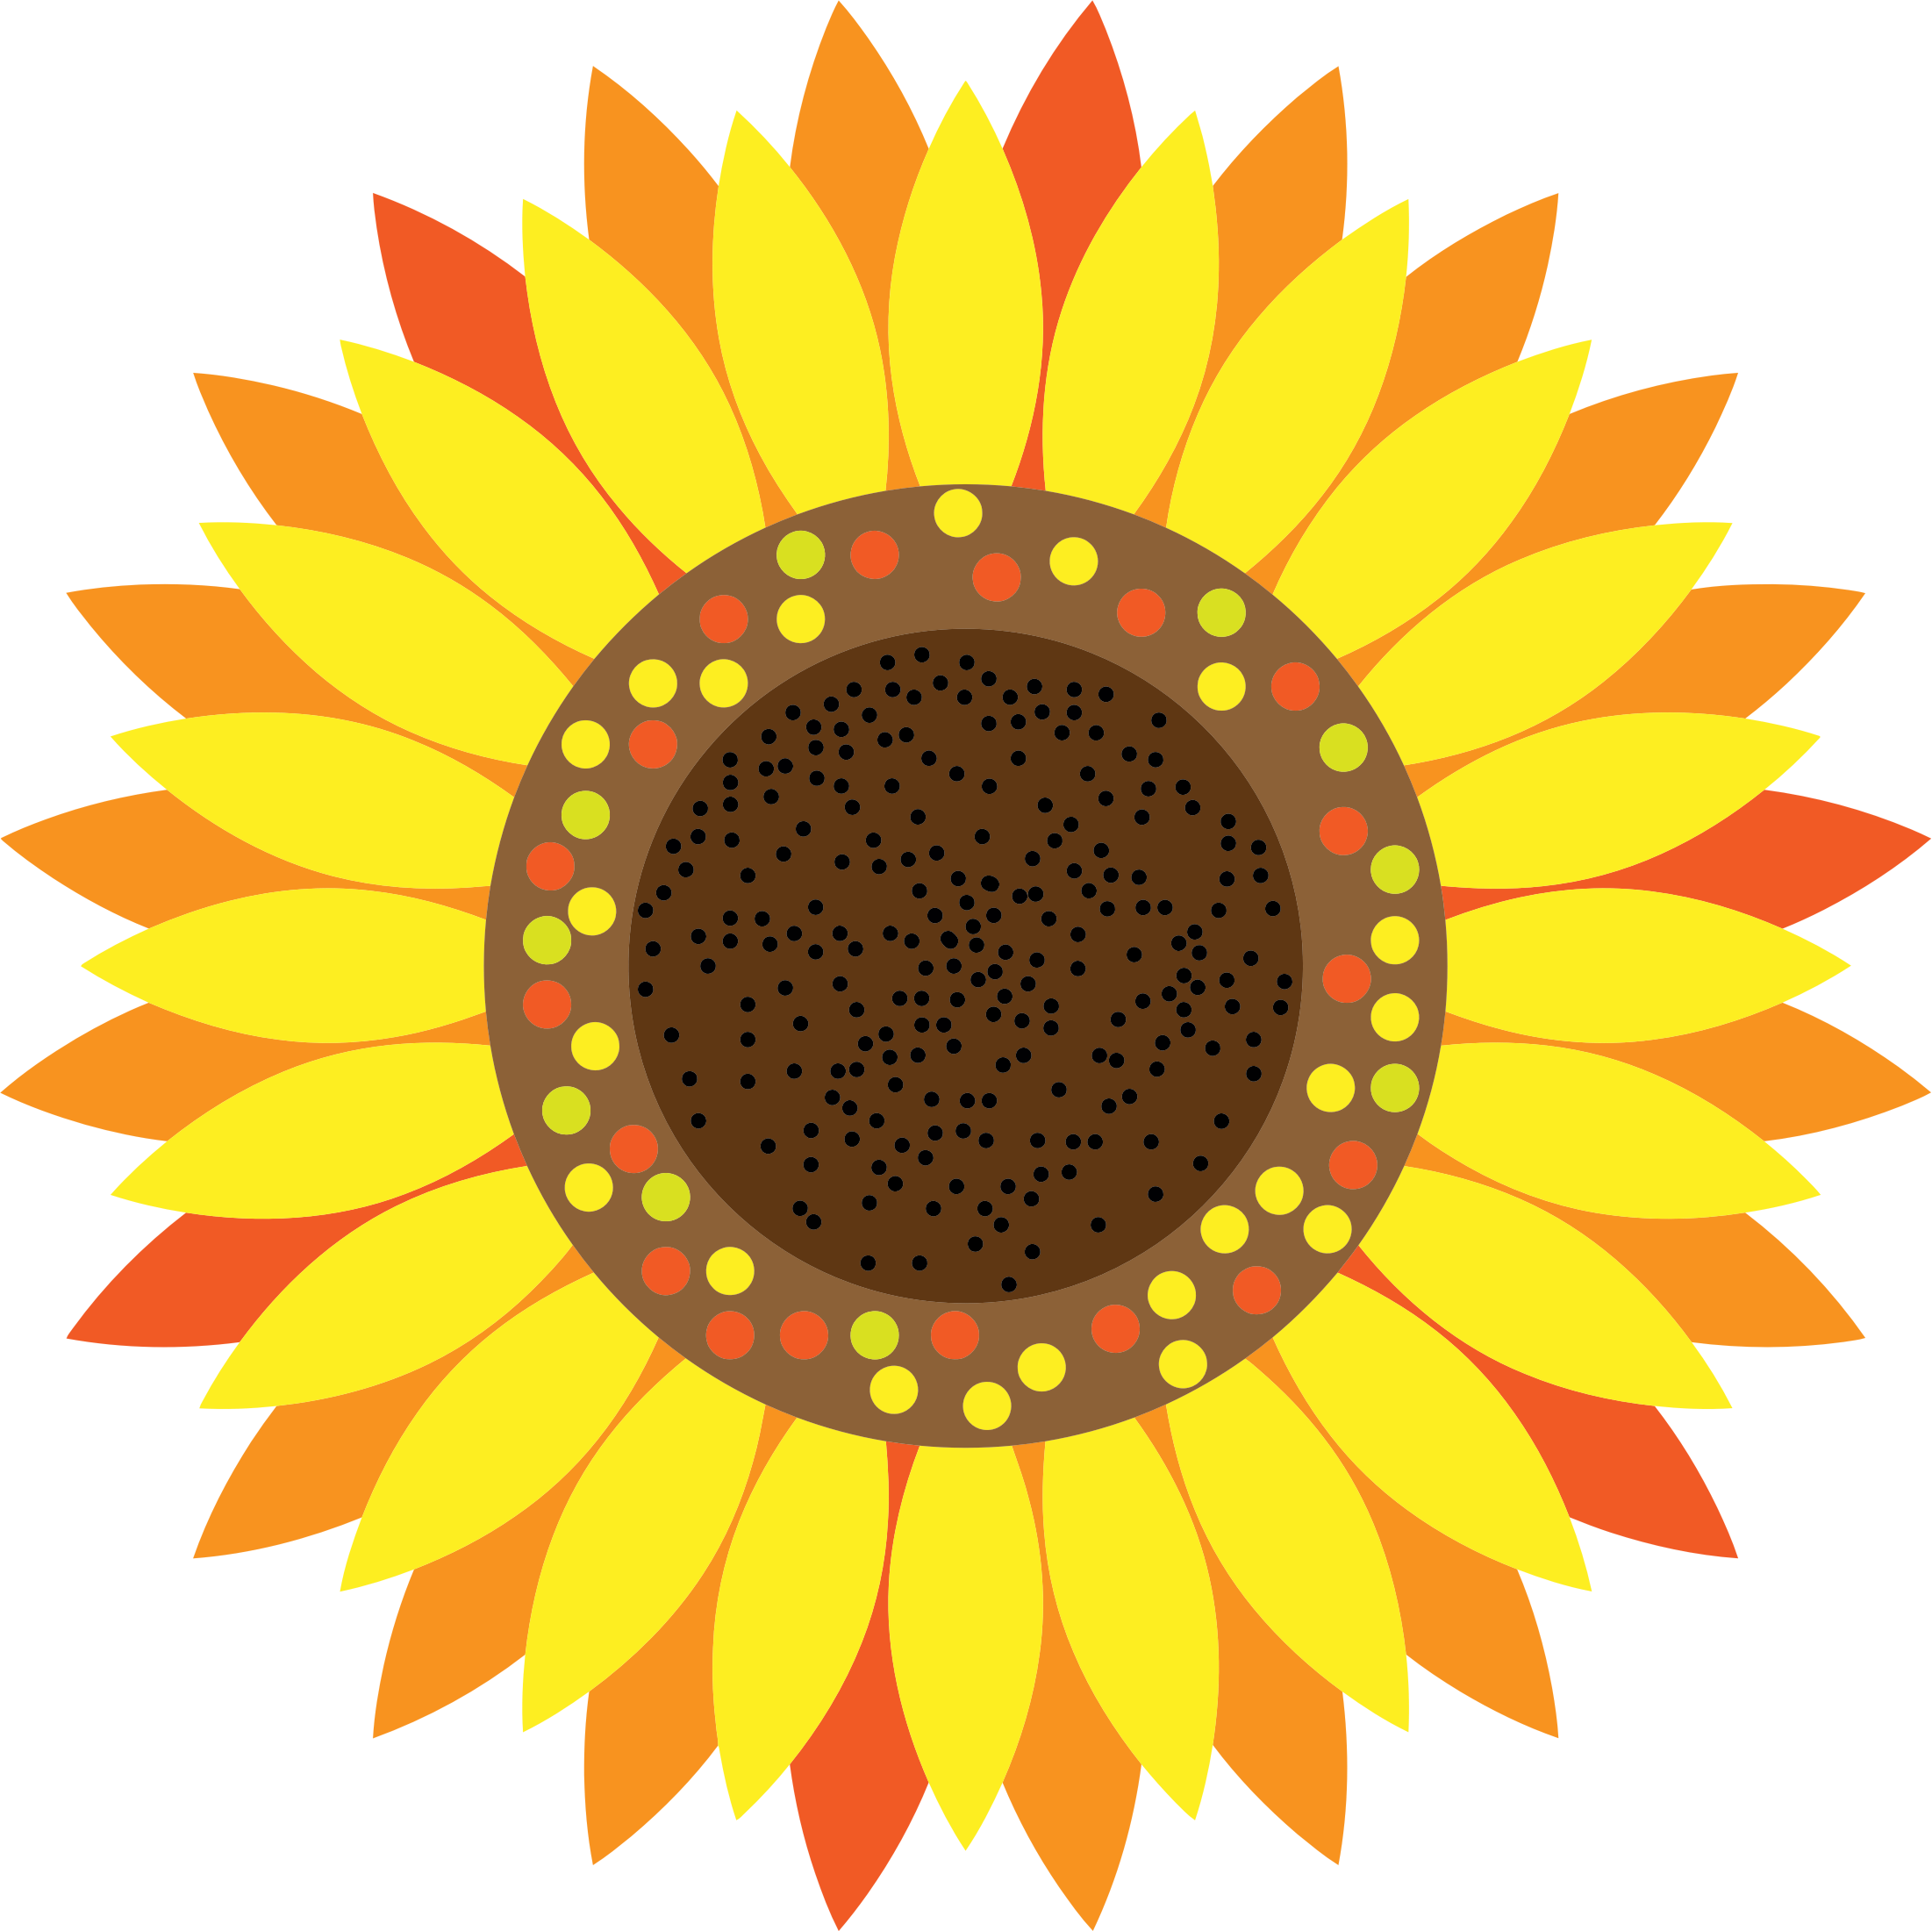 Sunflower by GDJ